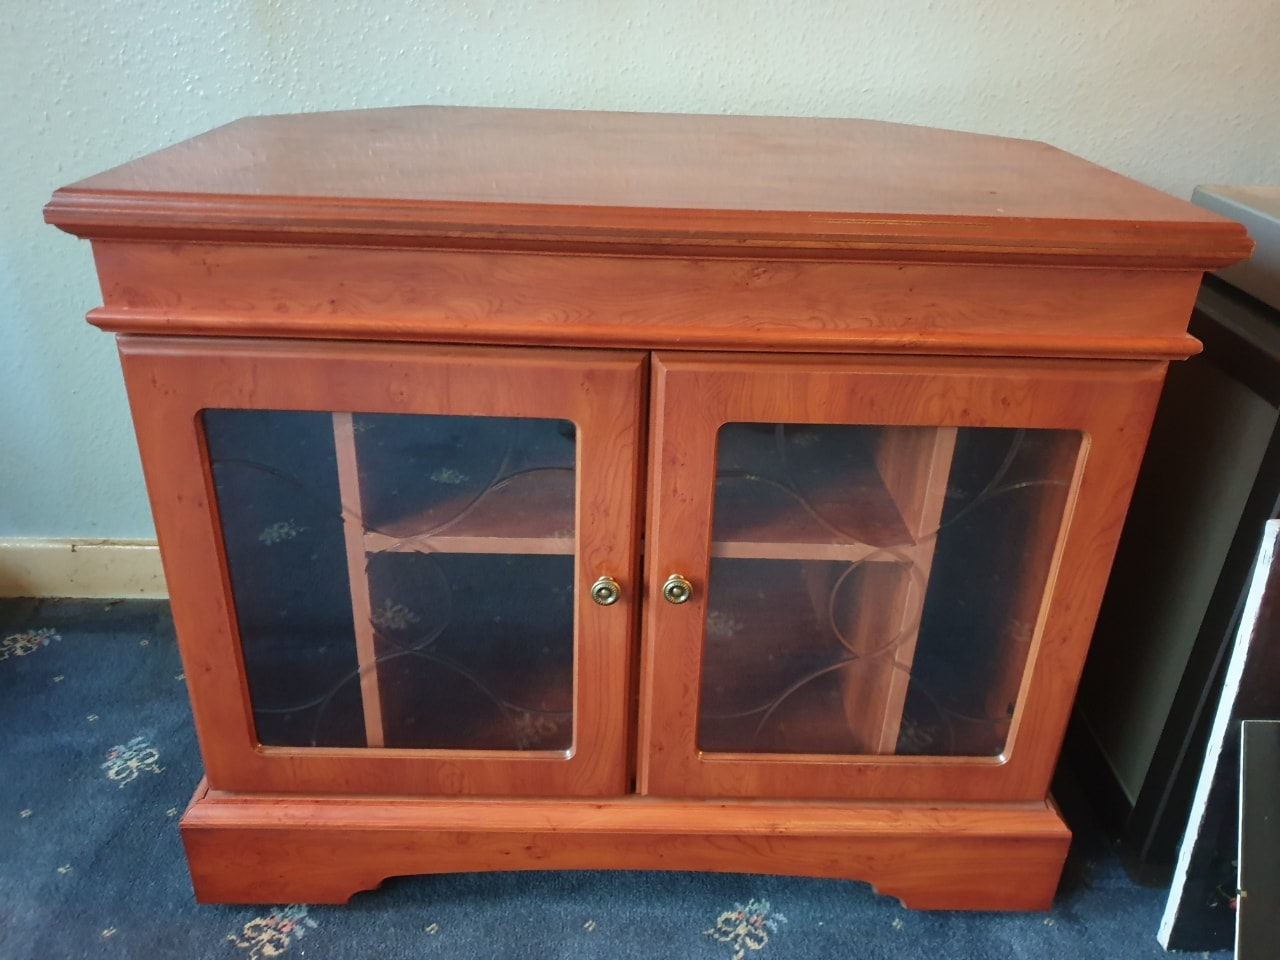 TV cabinet with glass front.